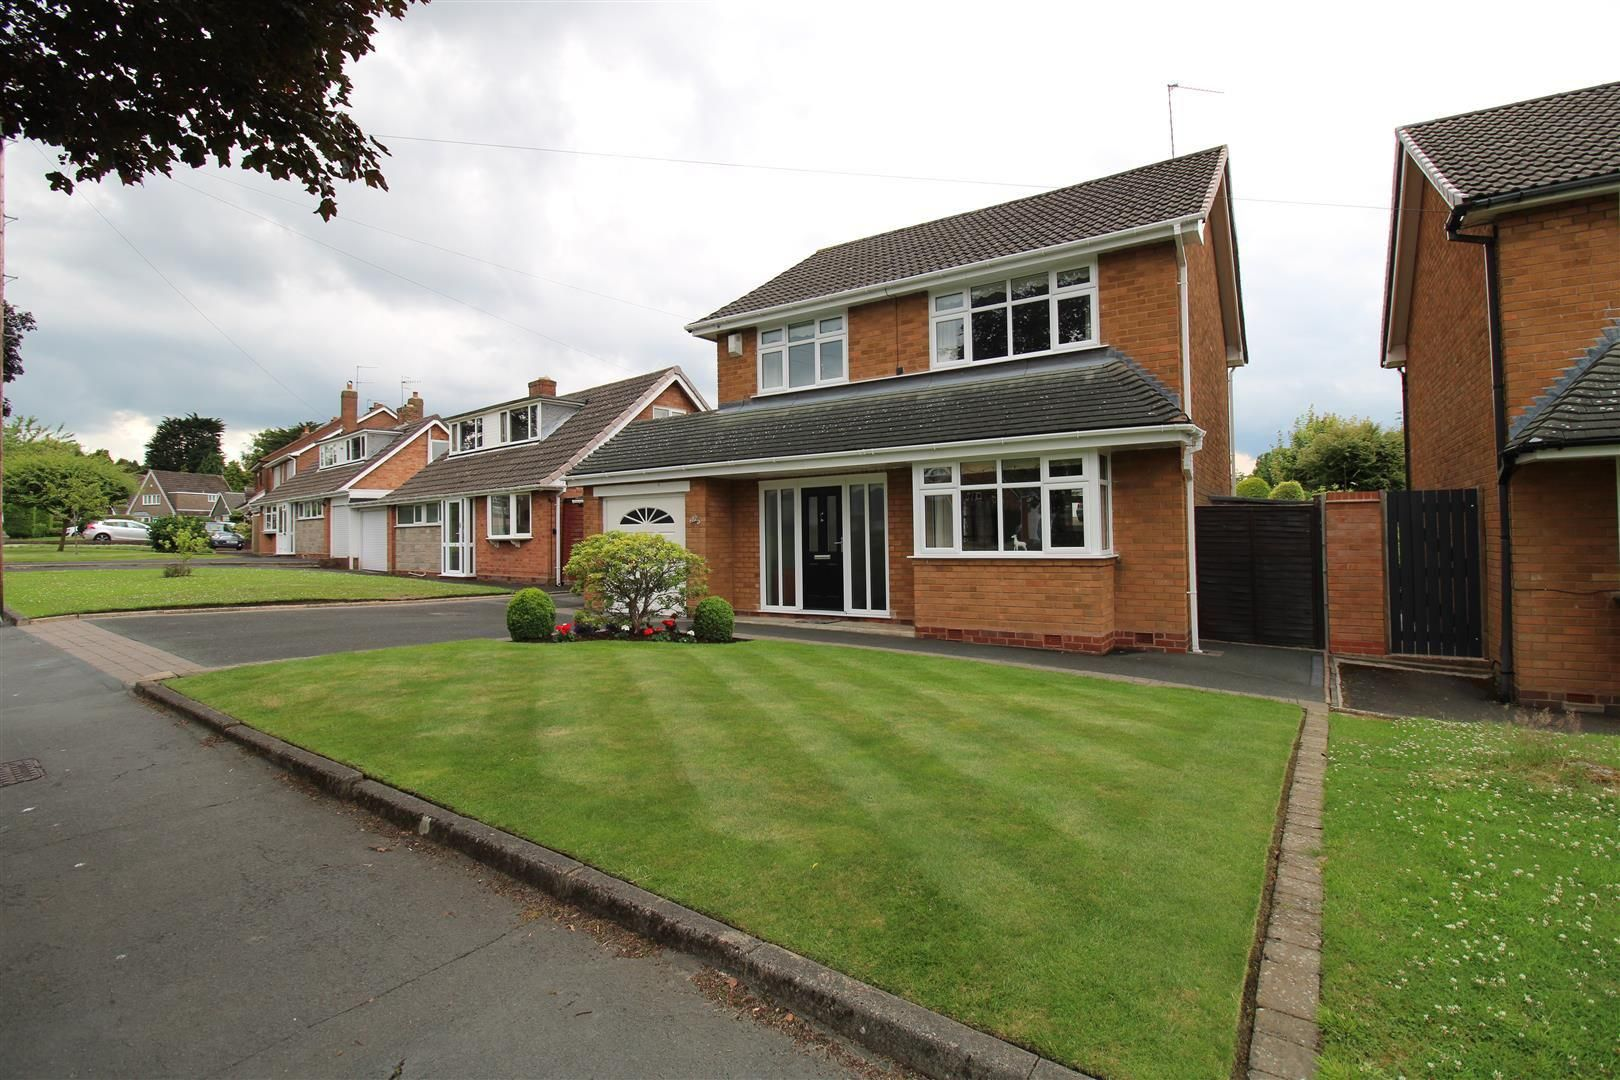 3 bed detached for sale in Pedmore 24